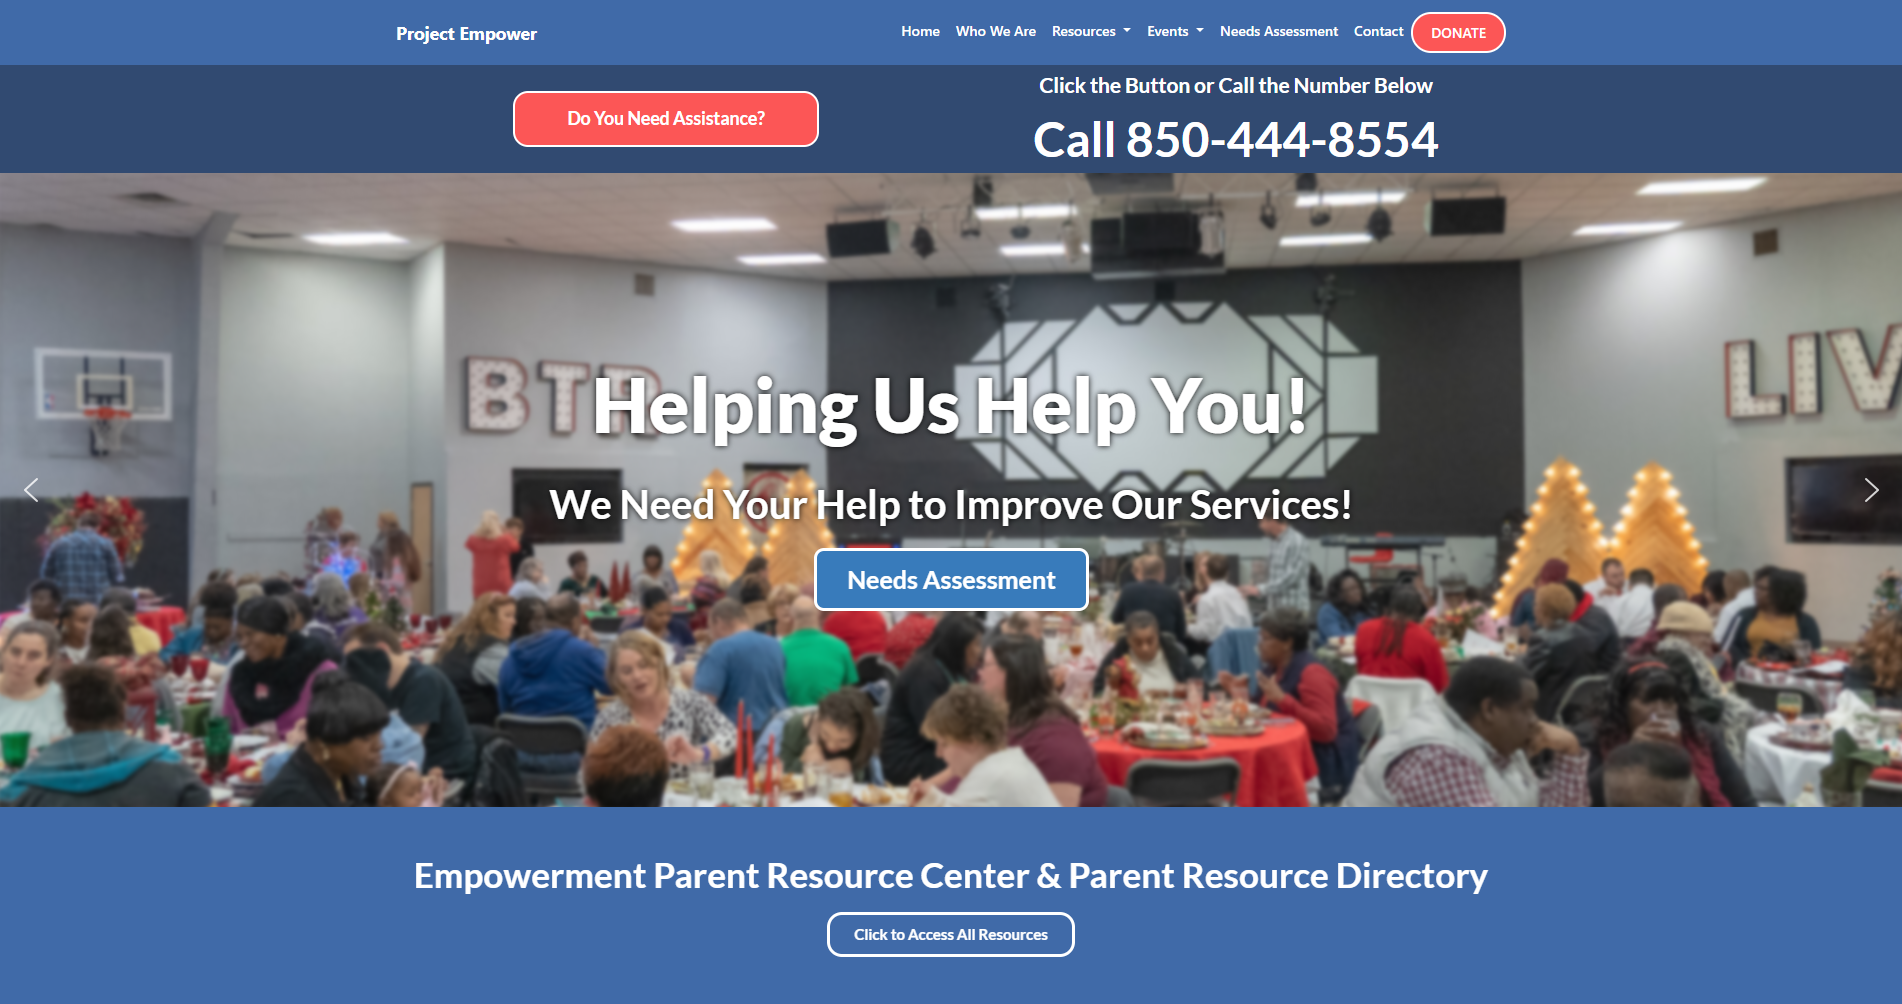 Image showcasing Customized Project Empower Website